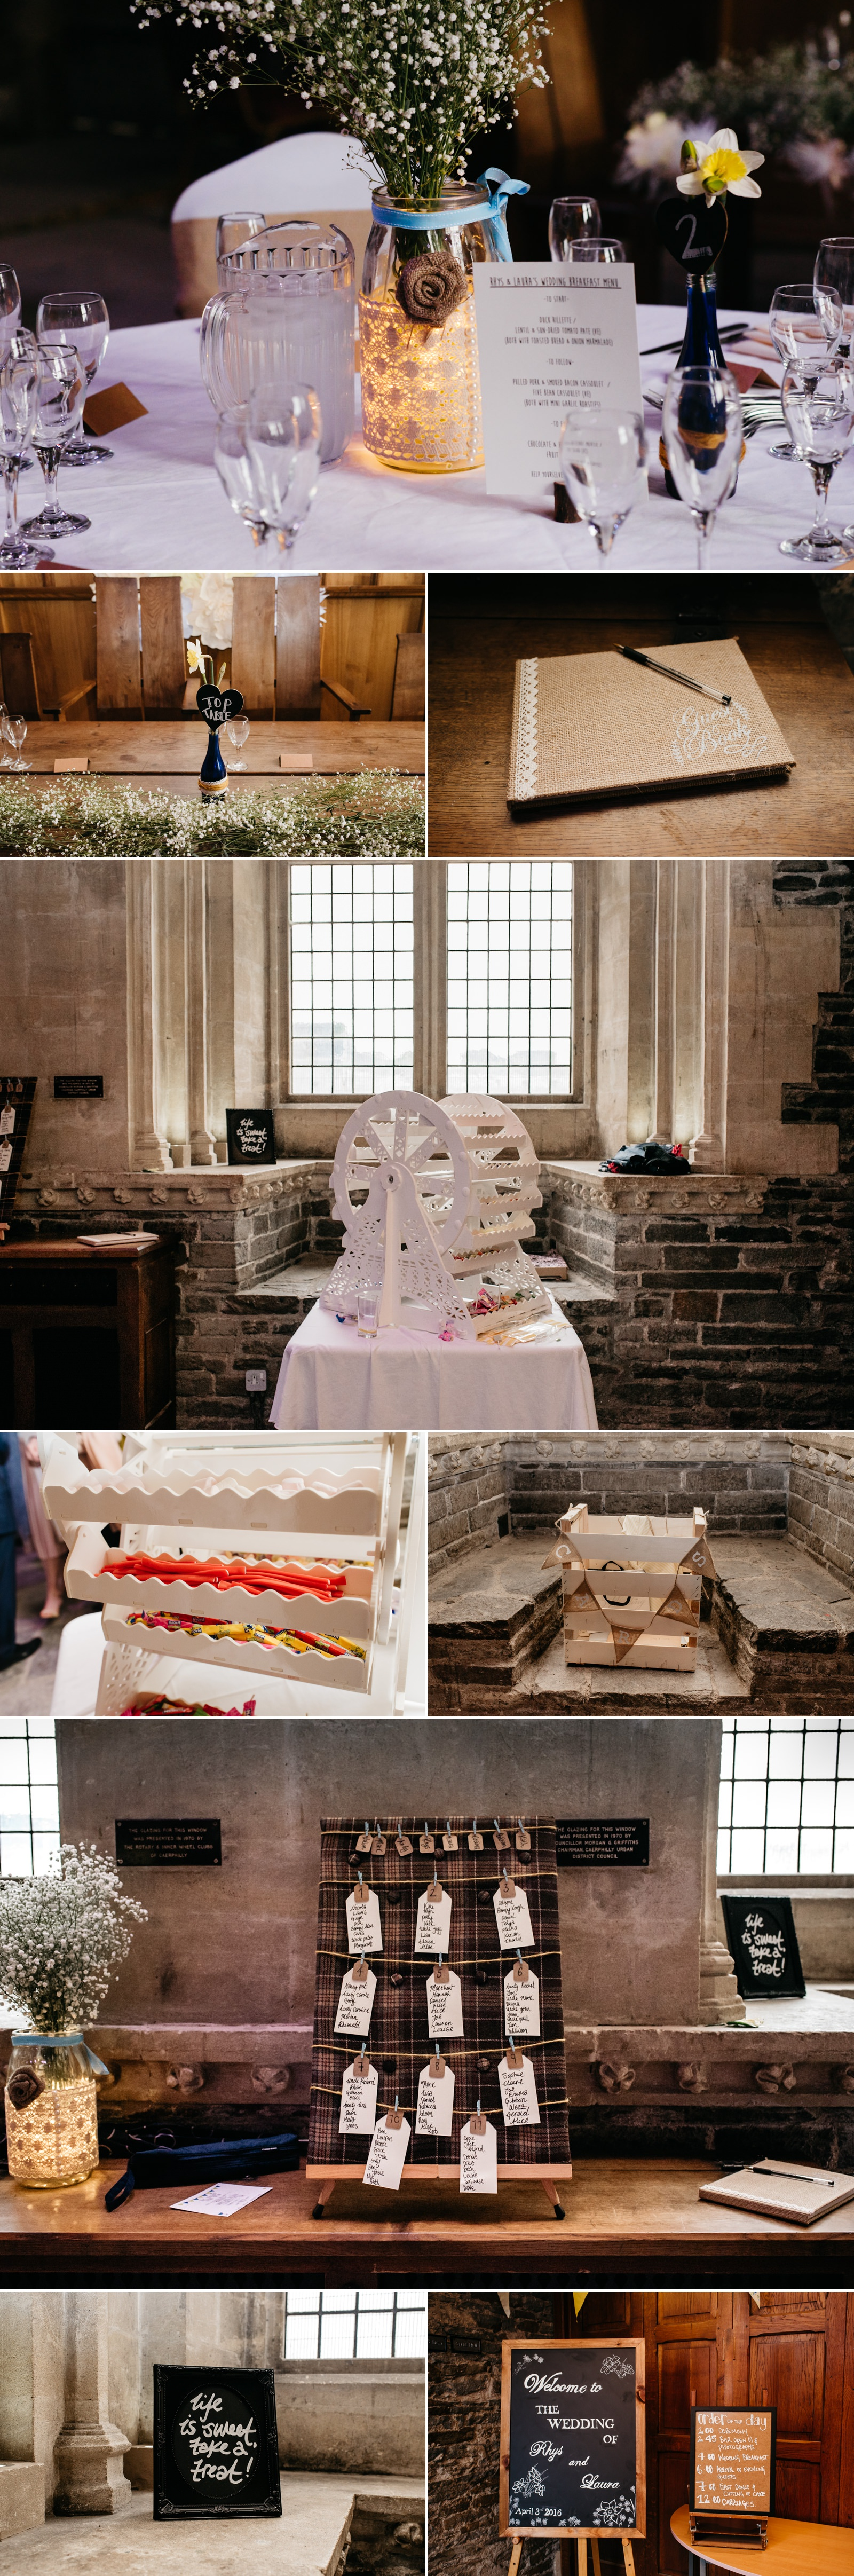 Decor details for wedding at Caerphilly Castle in South Wales